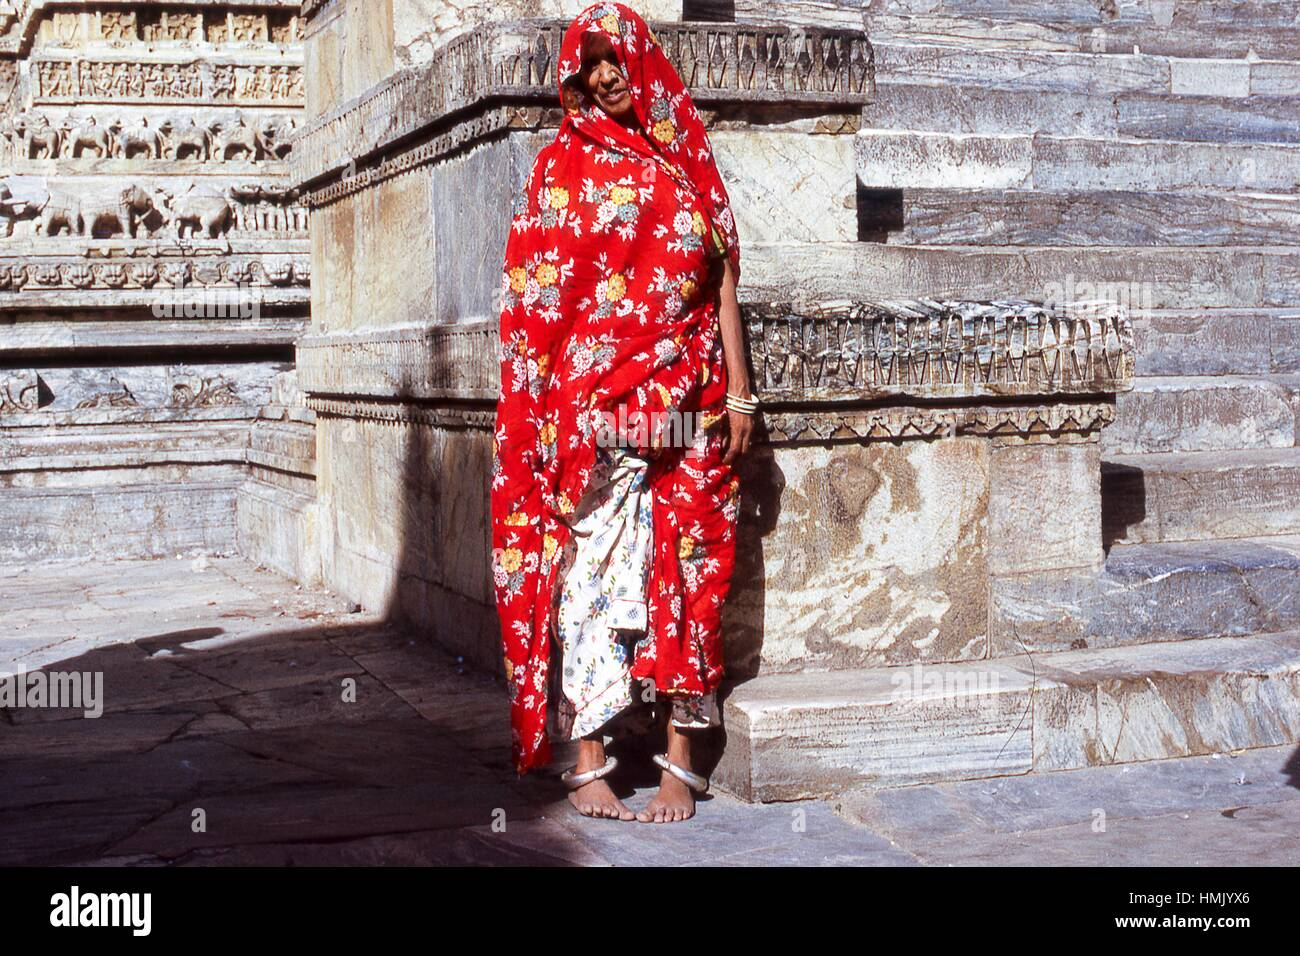 View of a beggar woman in red cloth posing in front of wall carvings at the Jagdish Temple complex, in Udaipur, - Stock Image